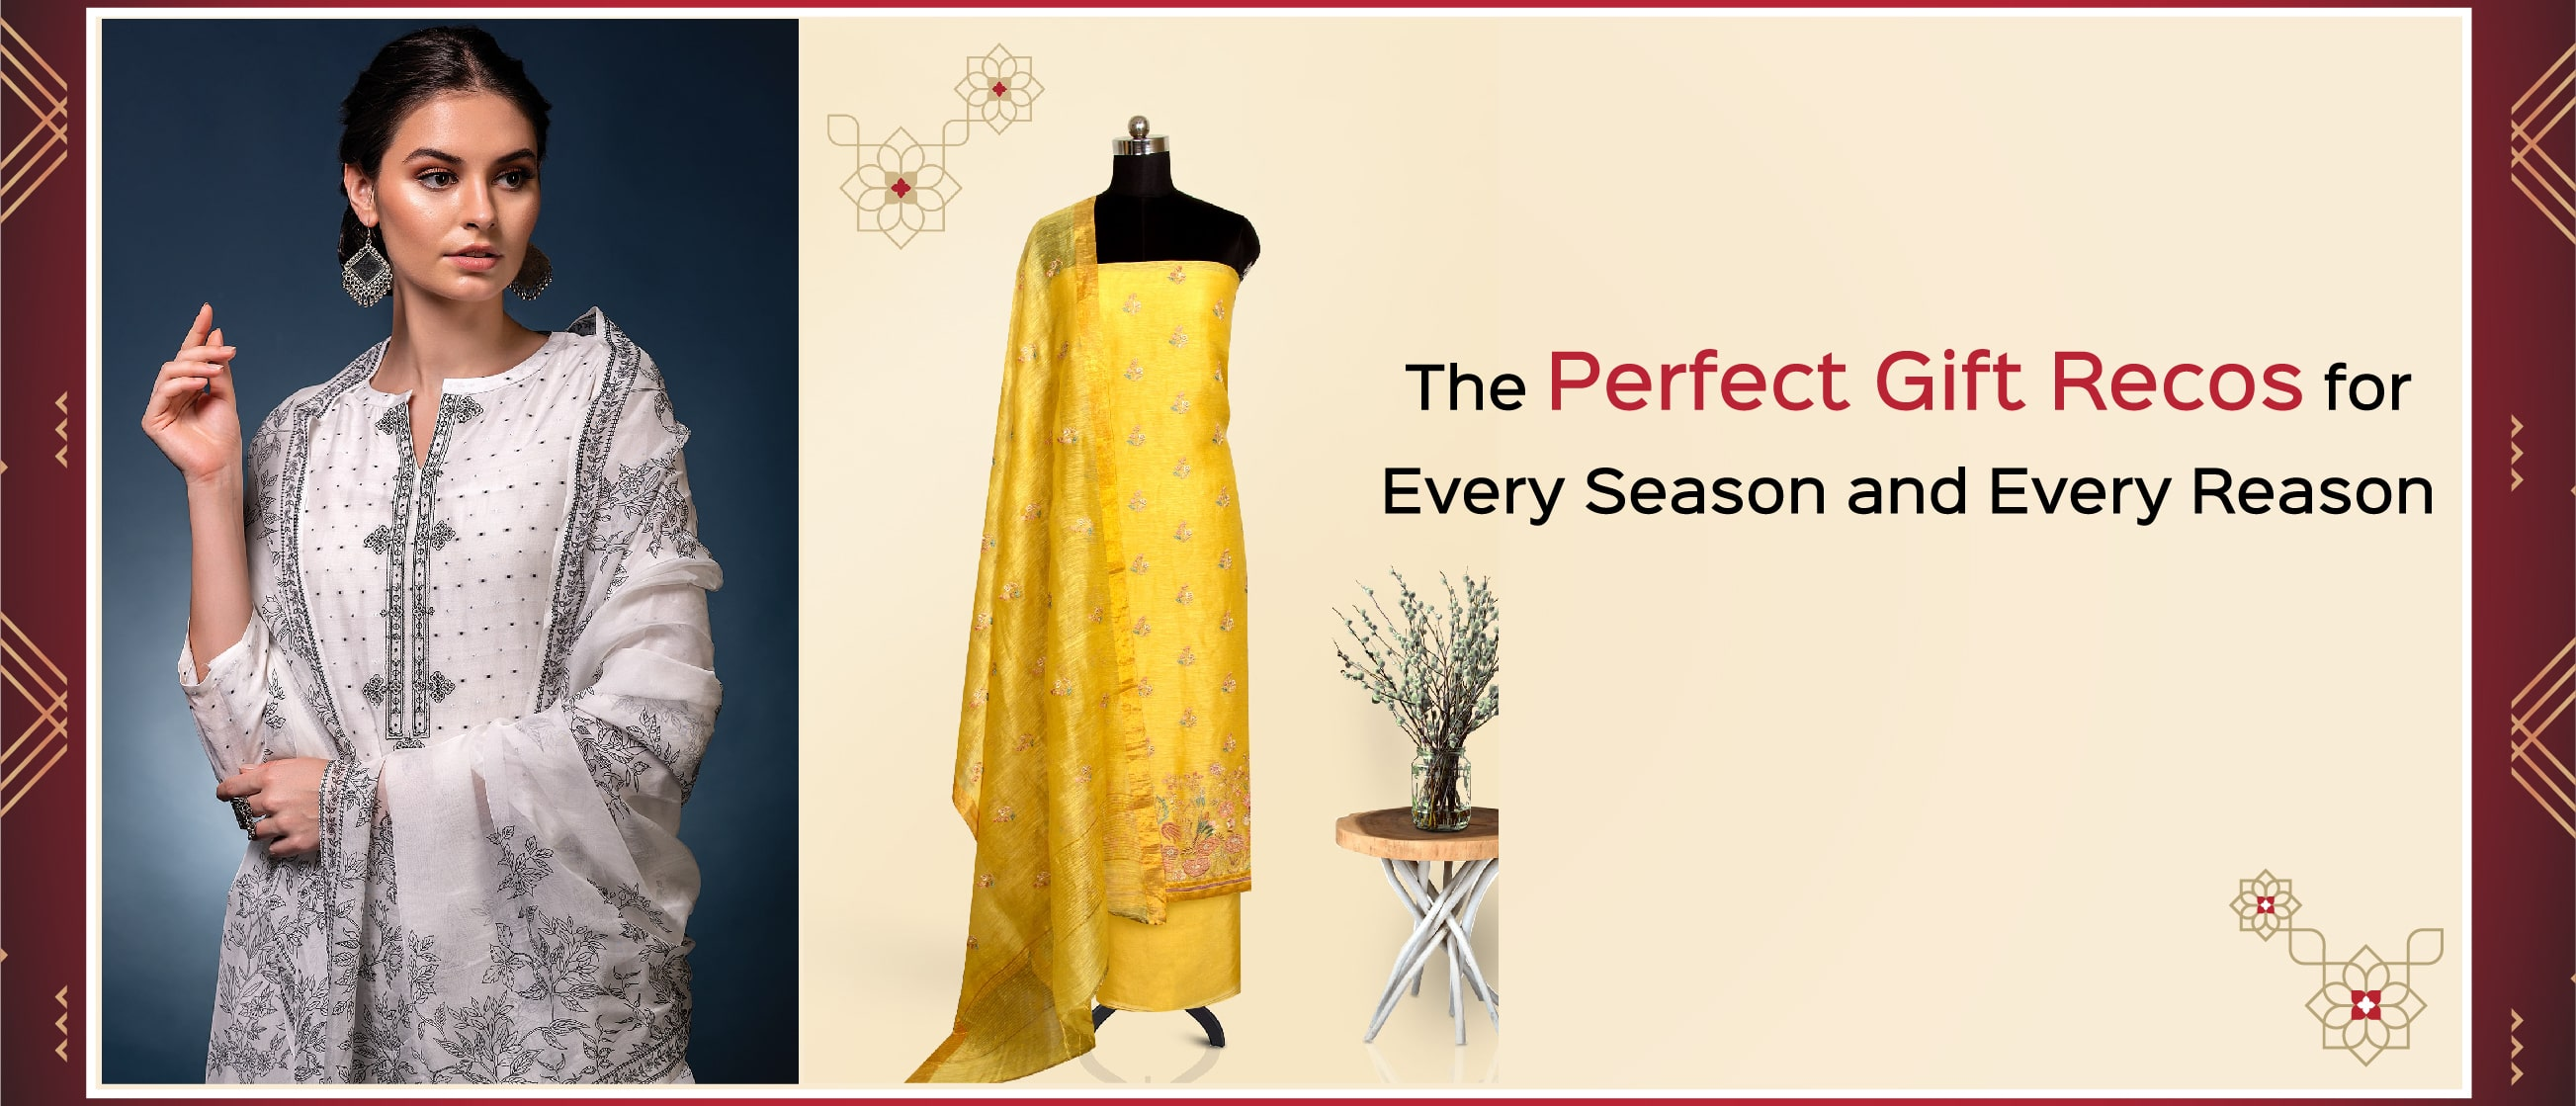 The Perfect Gift Recos for Every Season and Every Reason